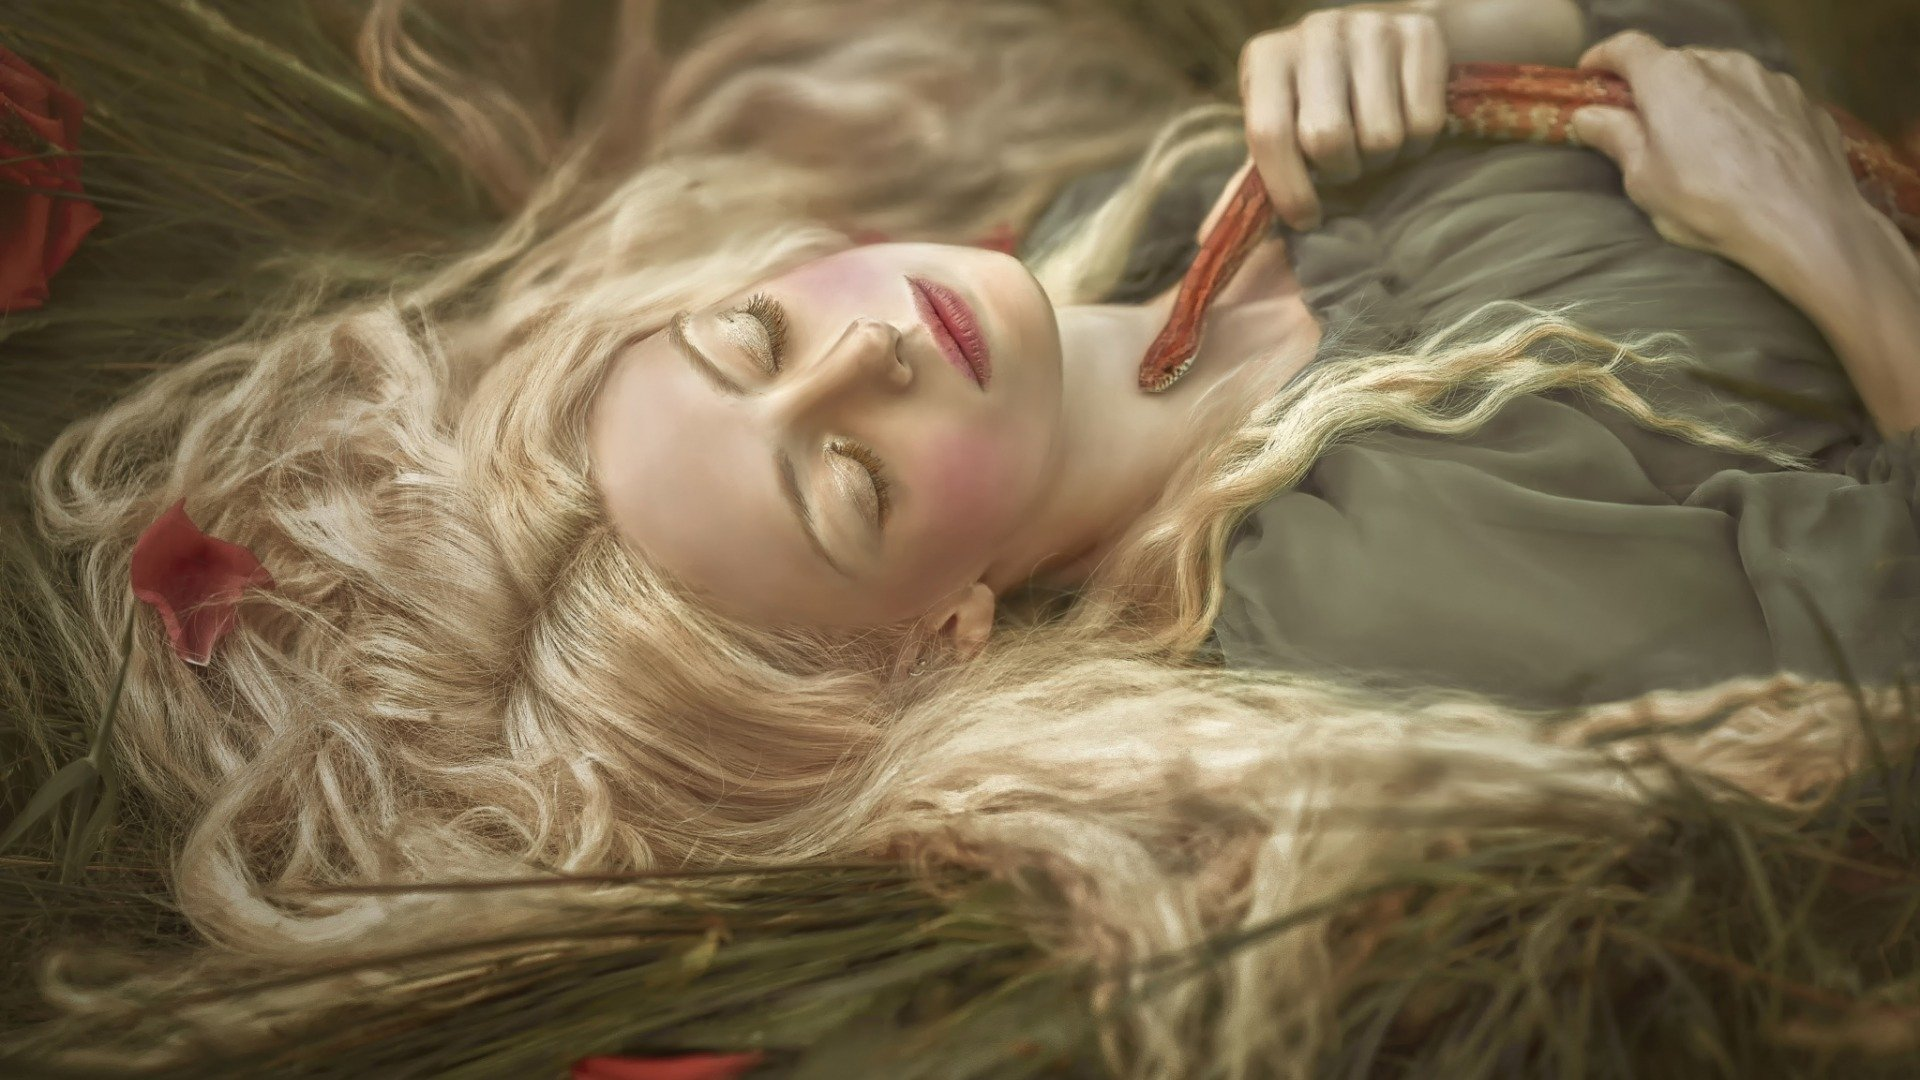 Mid summers dream full hd wallpaper and background image women mood woman sleeping snake girl blonde wallpaper voltagebd Choice Image